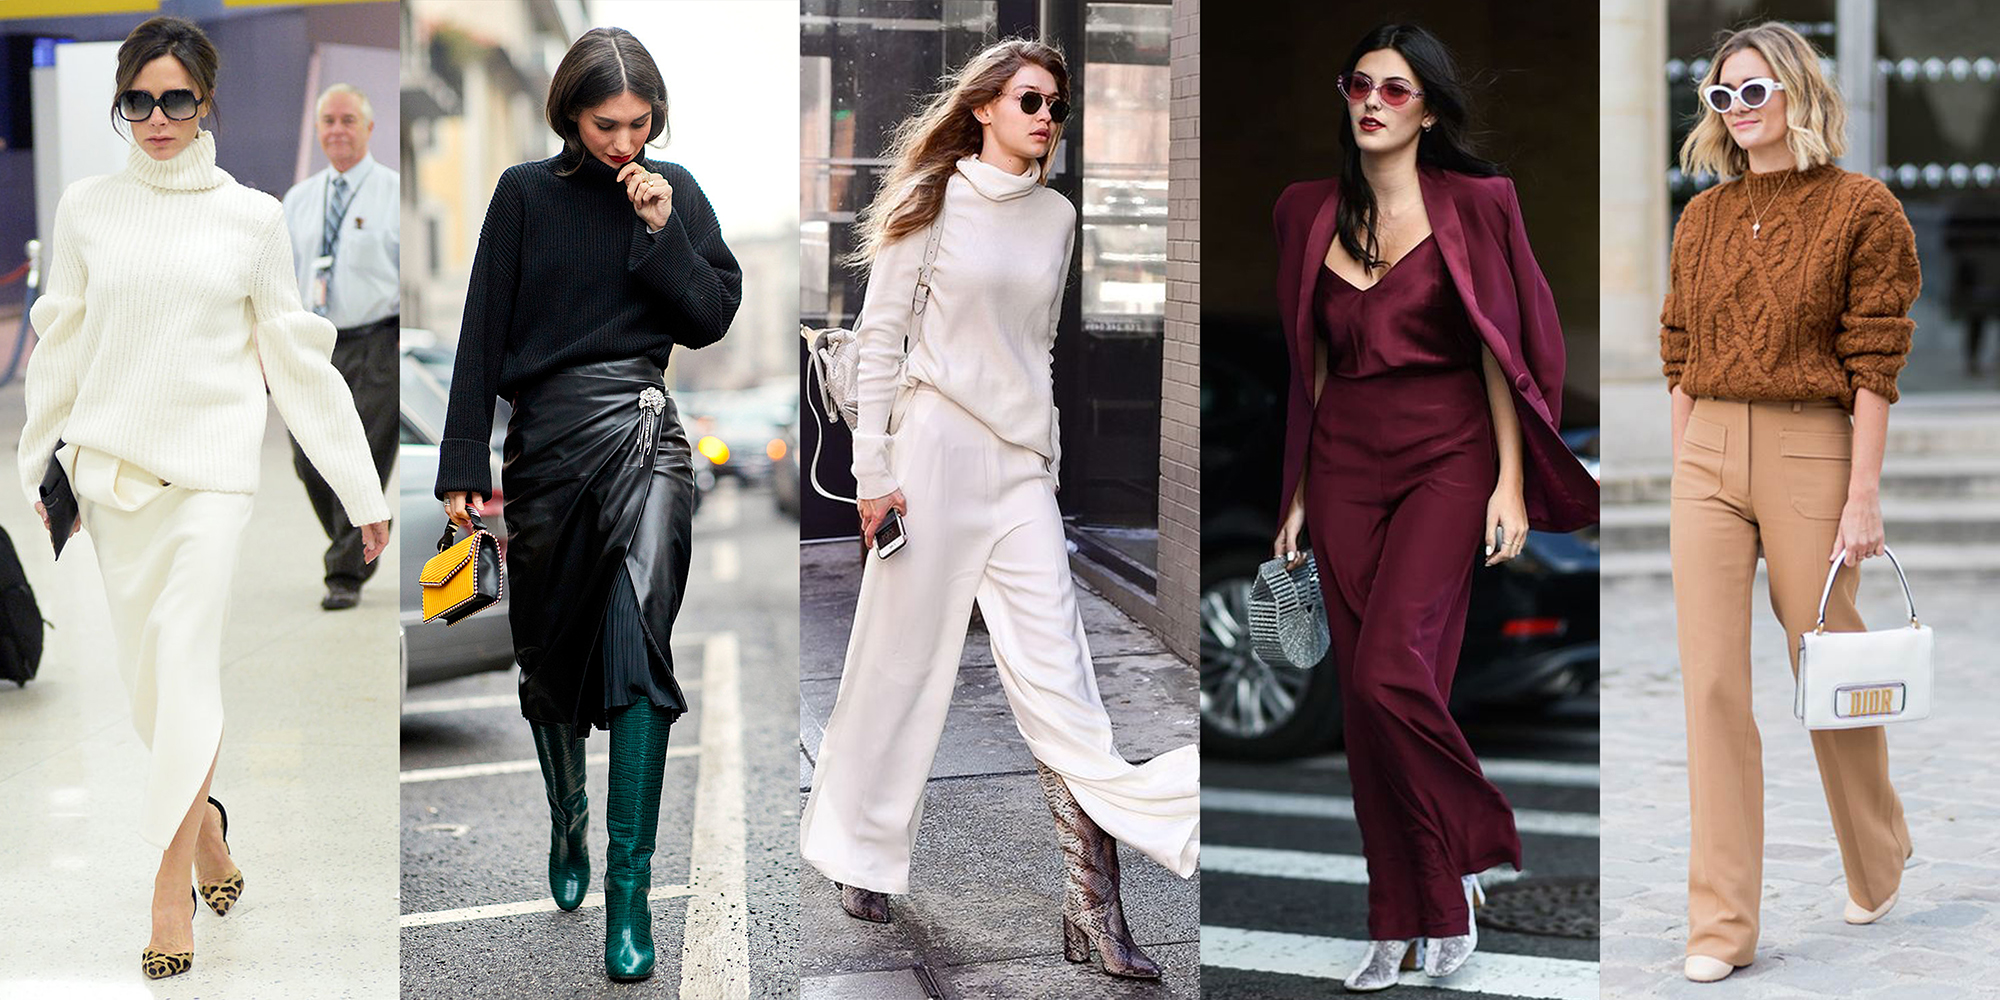 10-ways-to-wear-monochromatic-outfits-8.jpg